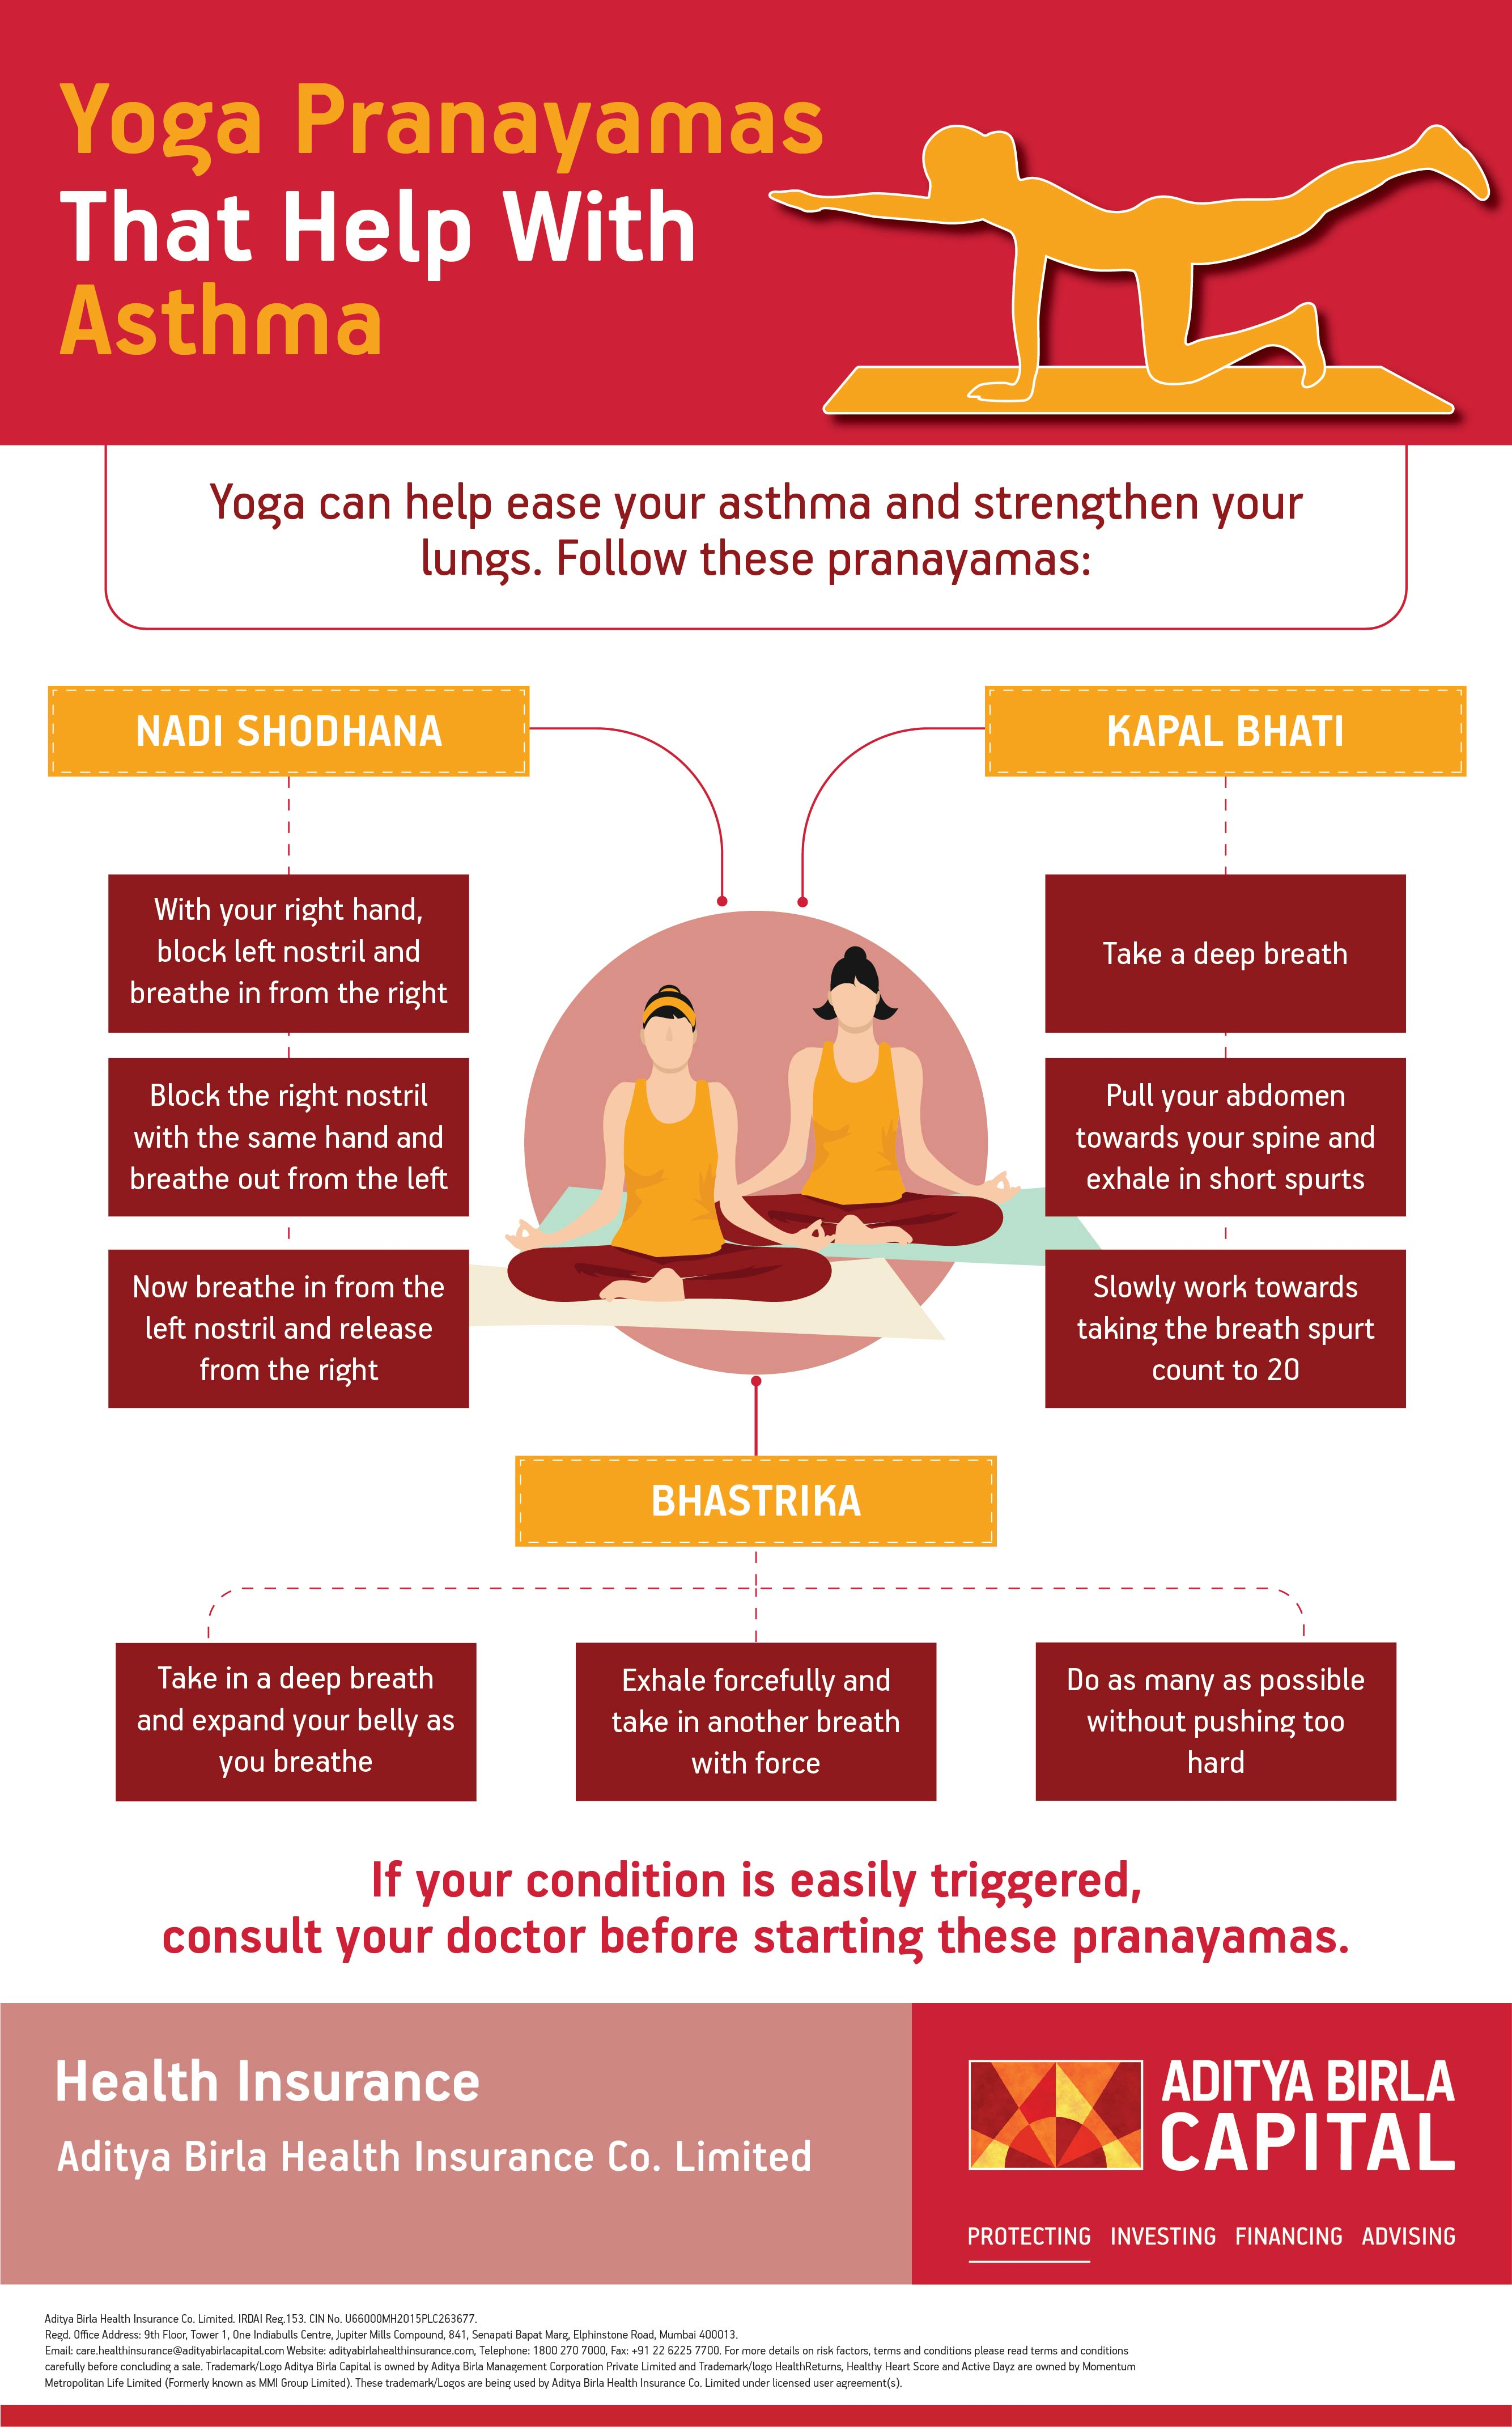 Yoga Pranayamas For Asthma Infographic - Activ Living